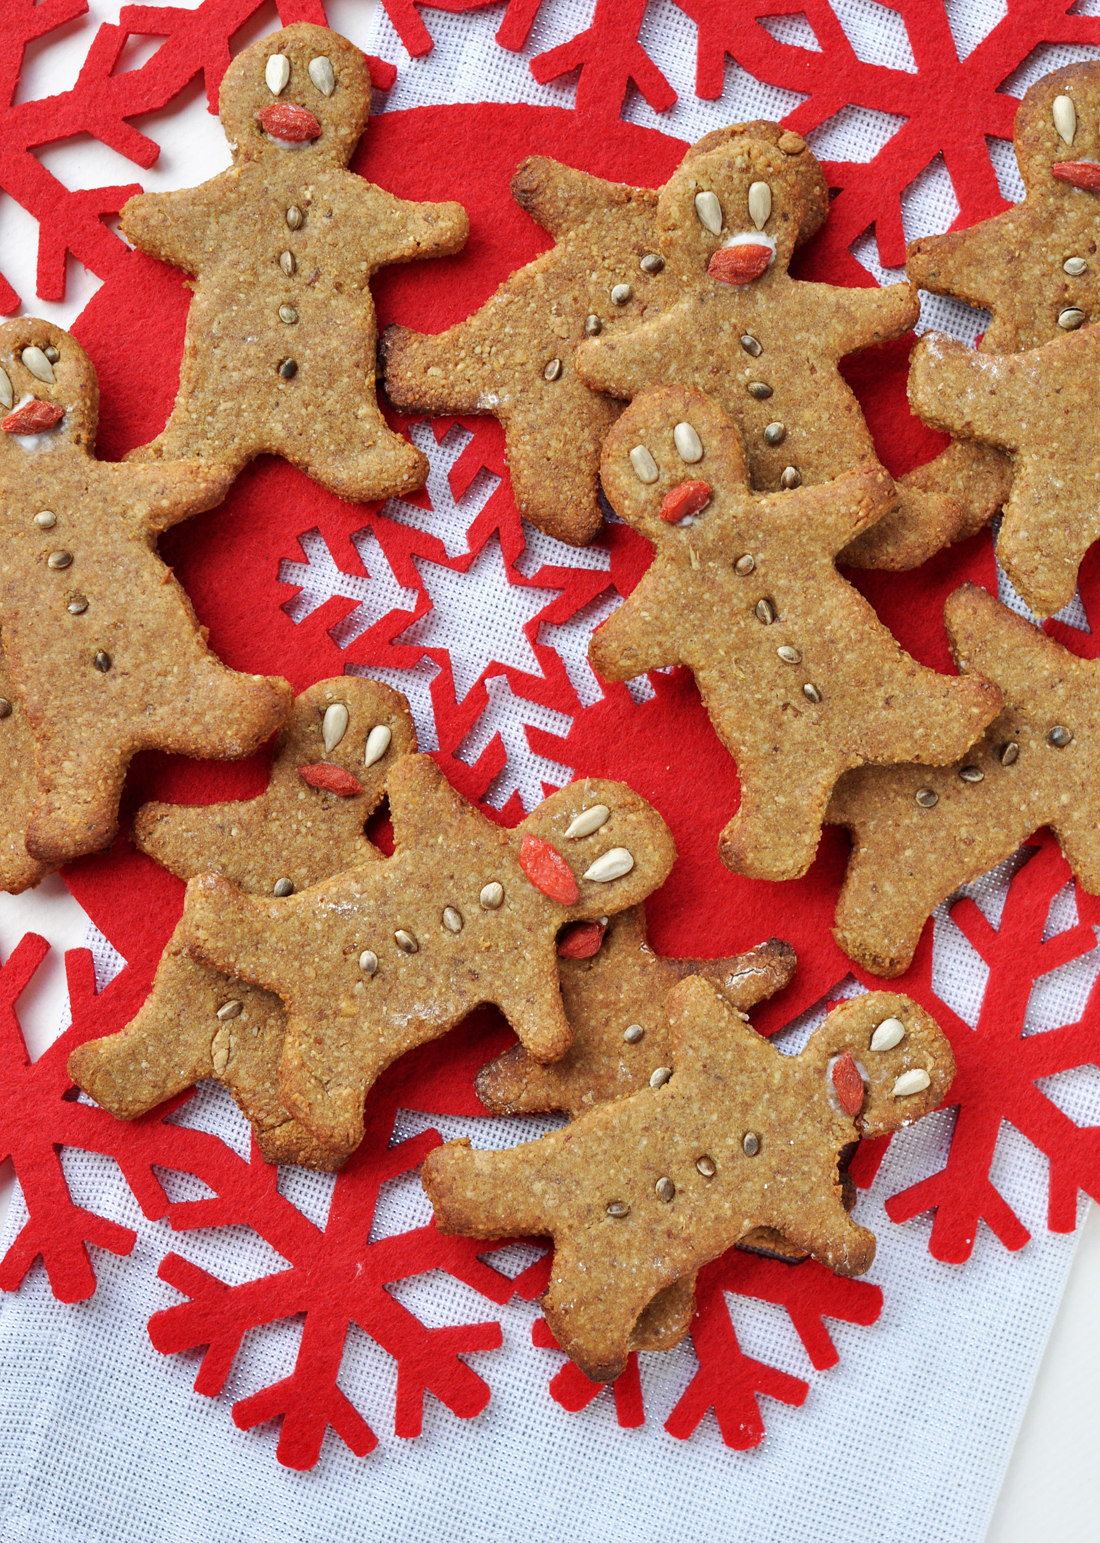 gingerbread men 1a.jpg